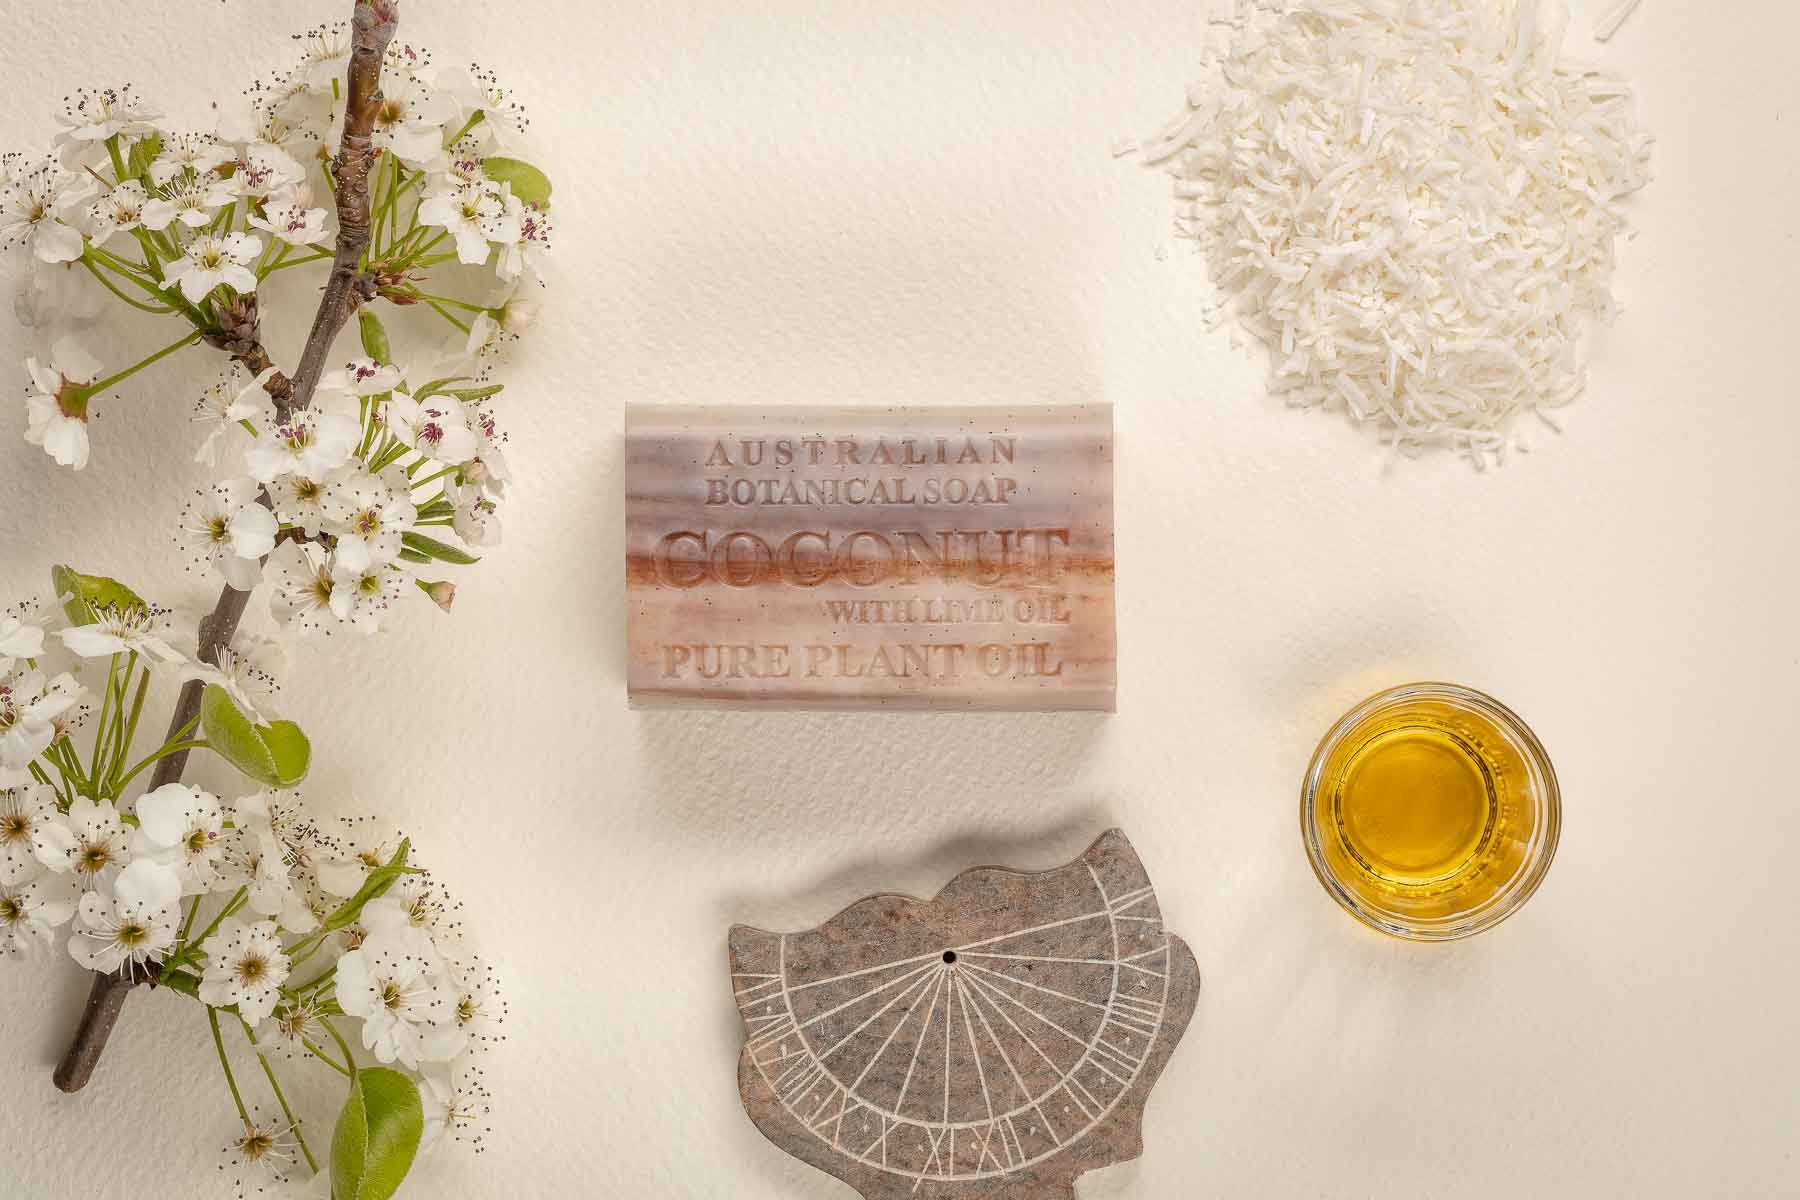 Australian Botanic Soap Coconut with oil and sun watch over the top view - Lifestyle advertising product photo